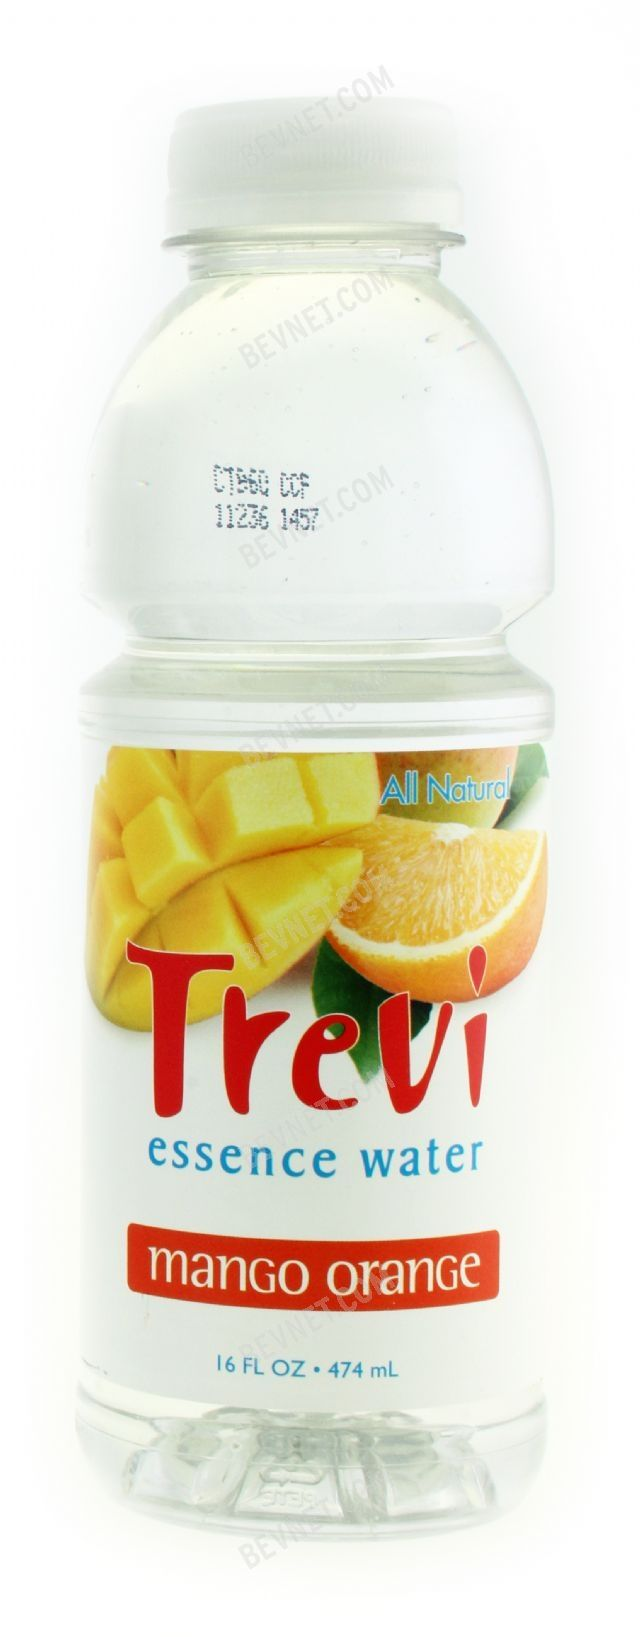 Trevi Essence Water: